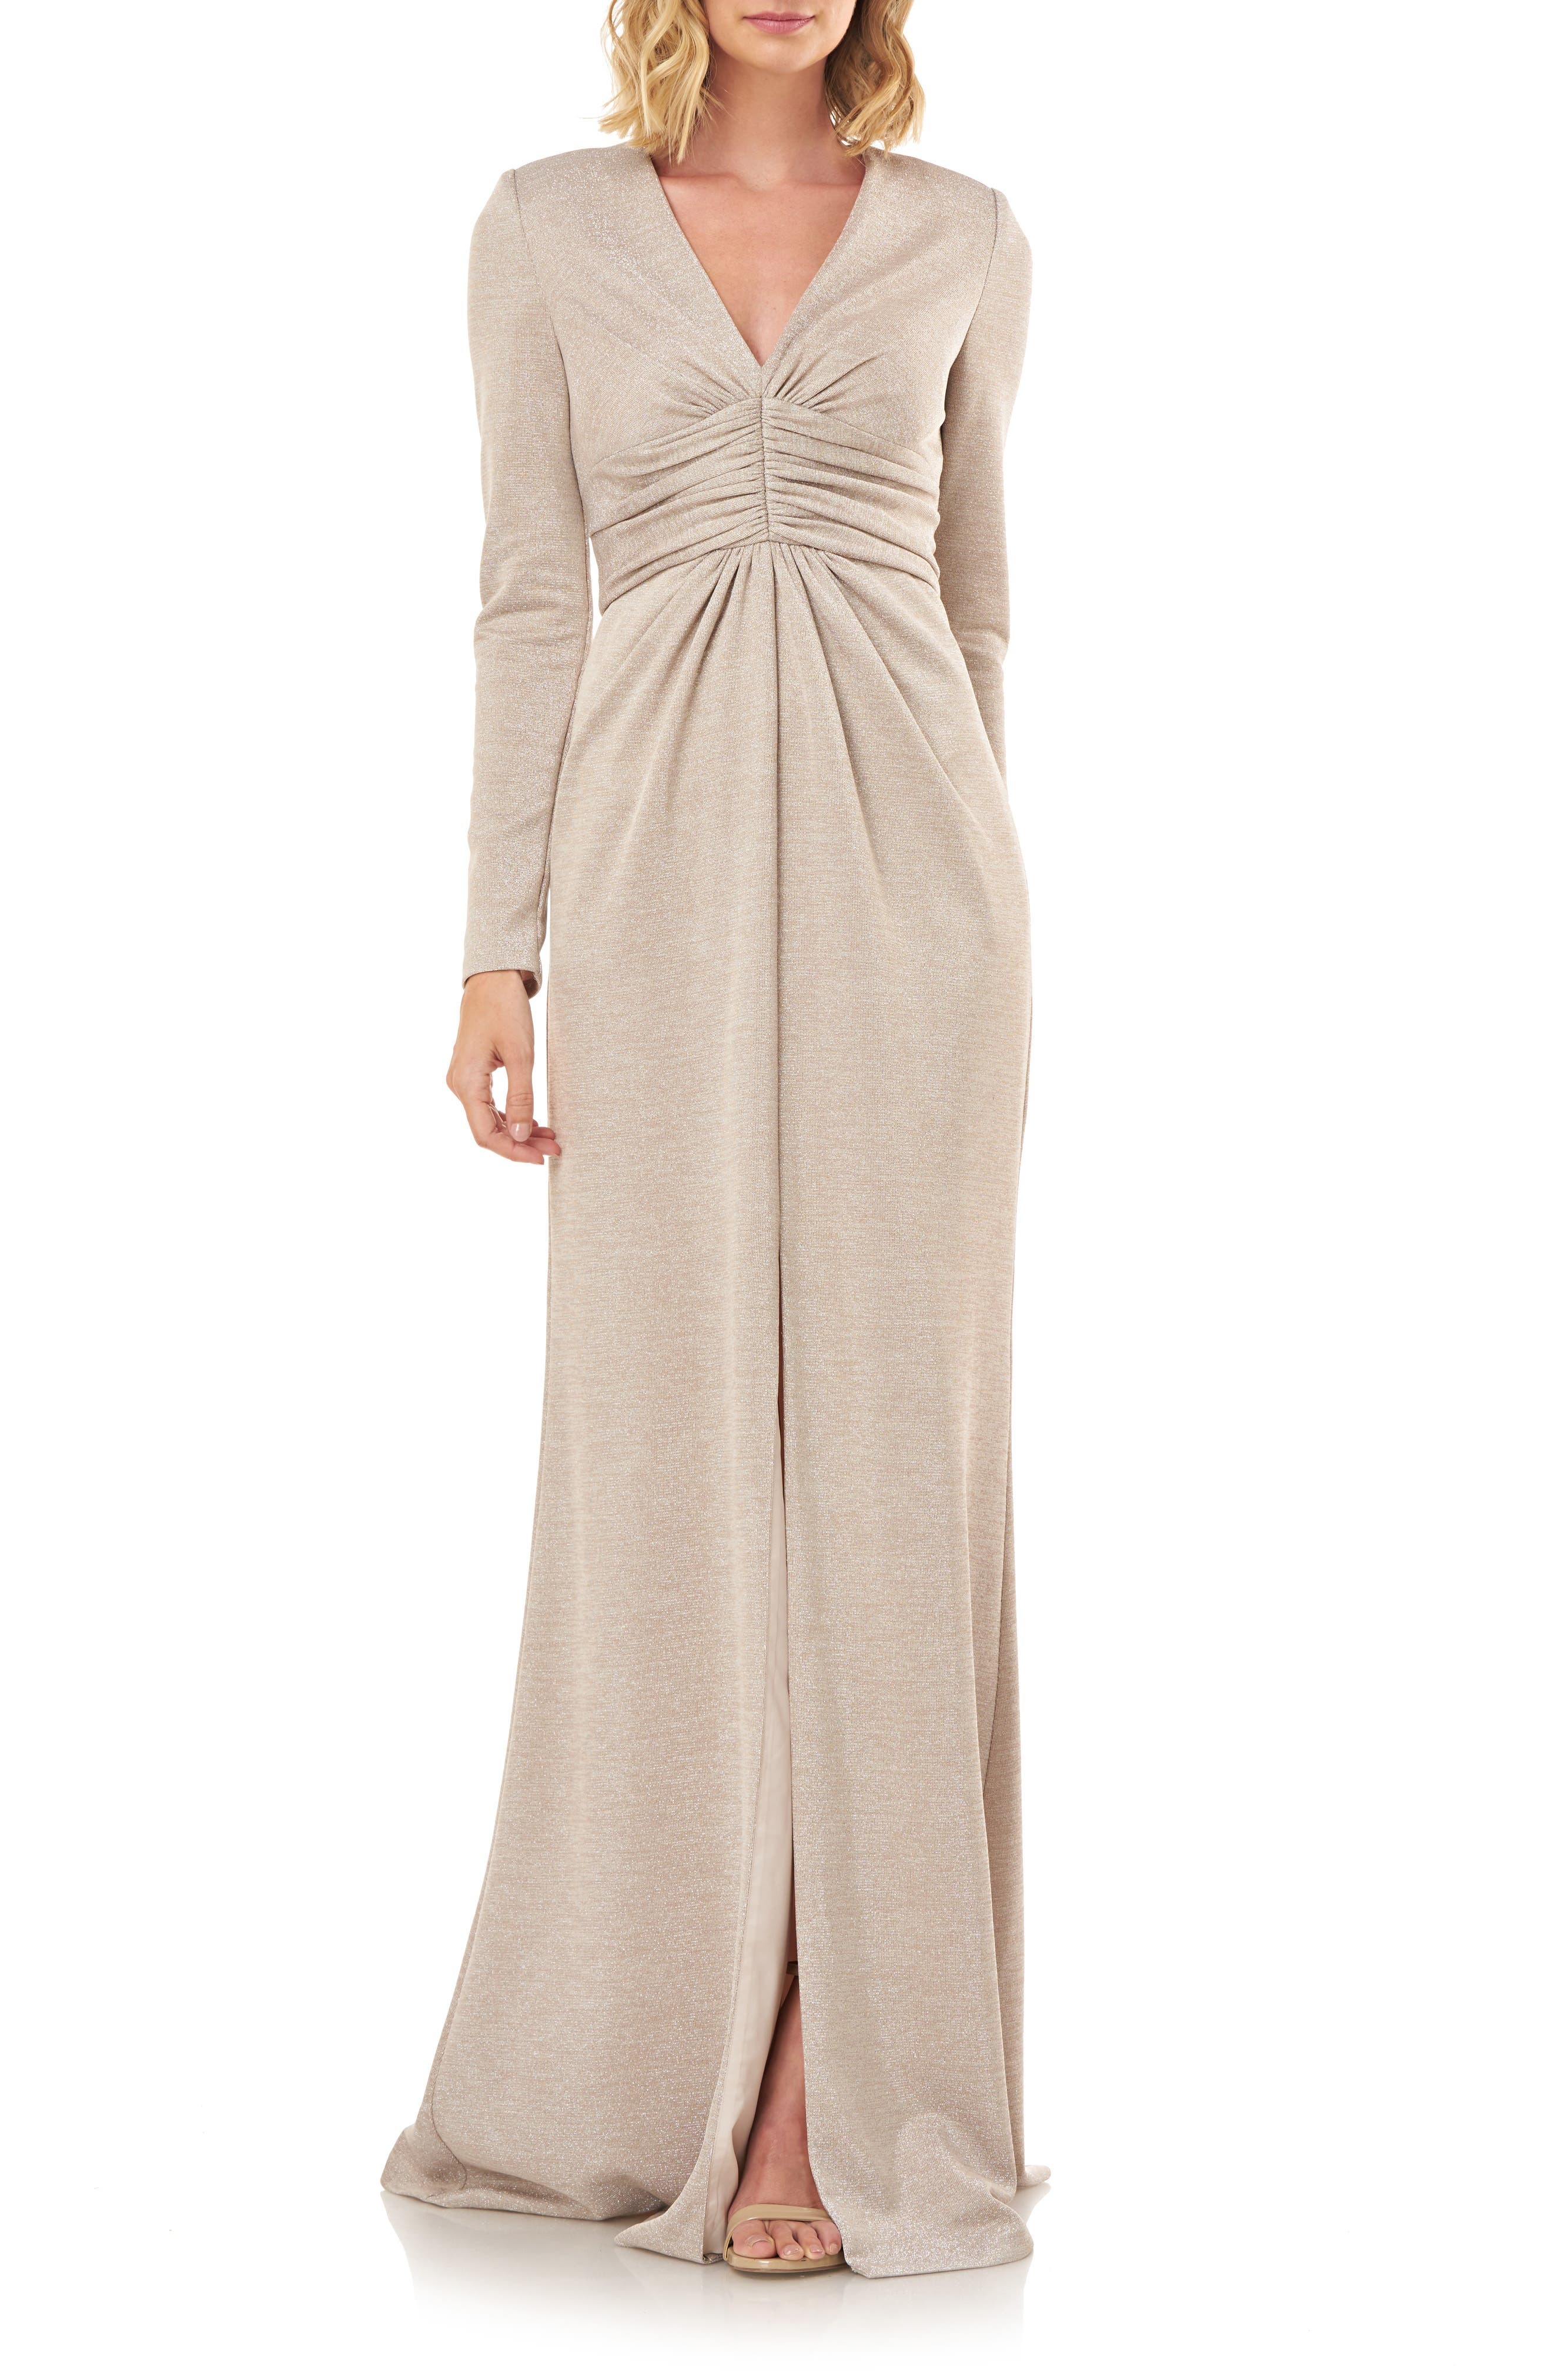 70s Prom, Formal, Evening, Party Dresses Womens Kay Unger Kayla Long Sleeve Evening Gown $288.00 AT vintagedancer.com